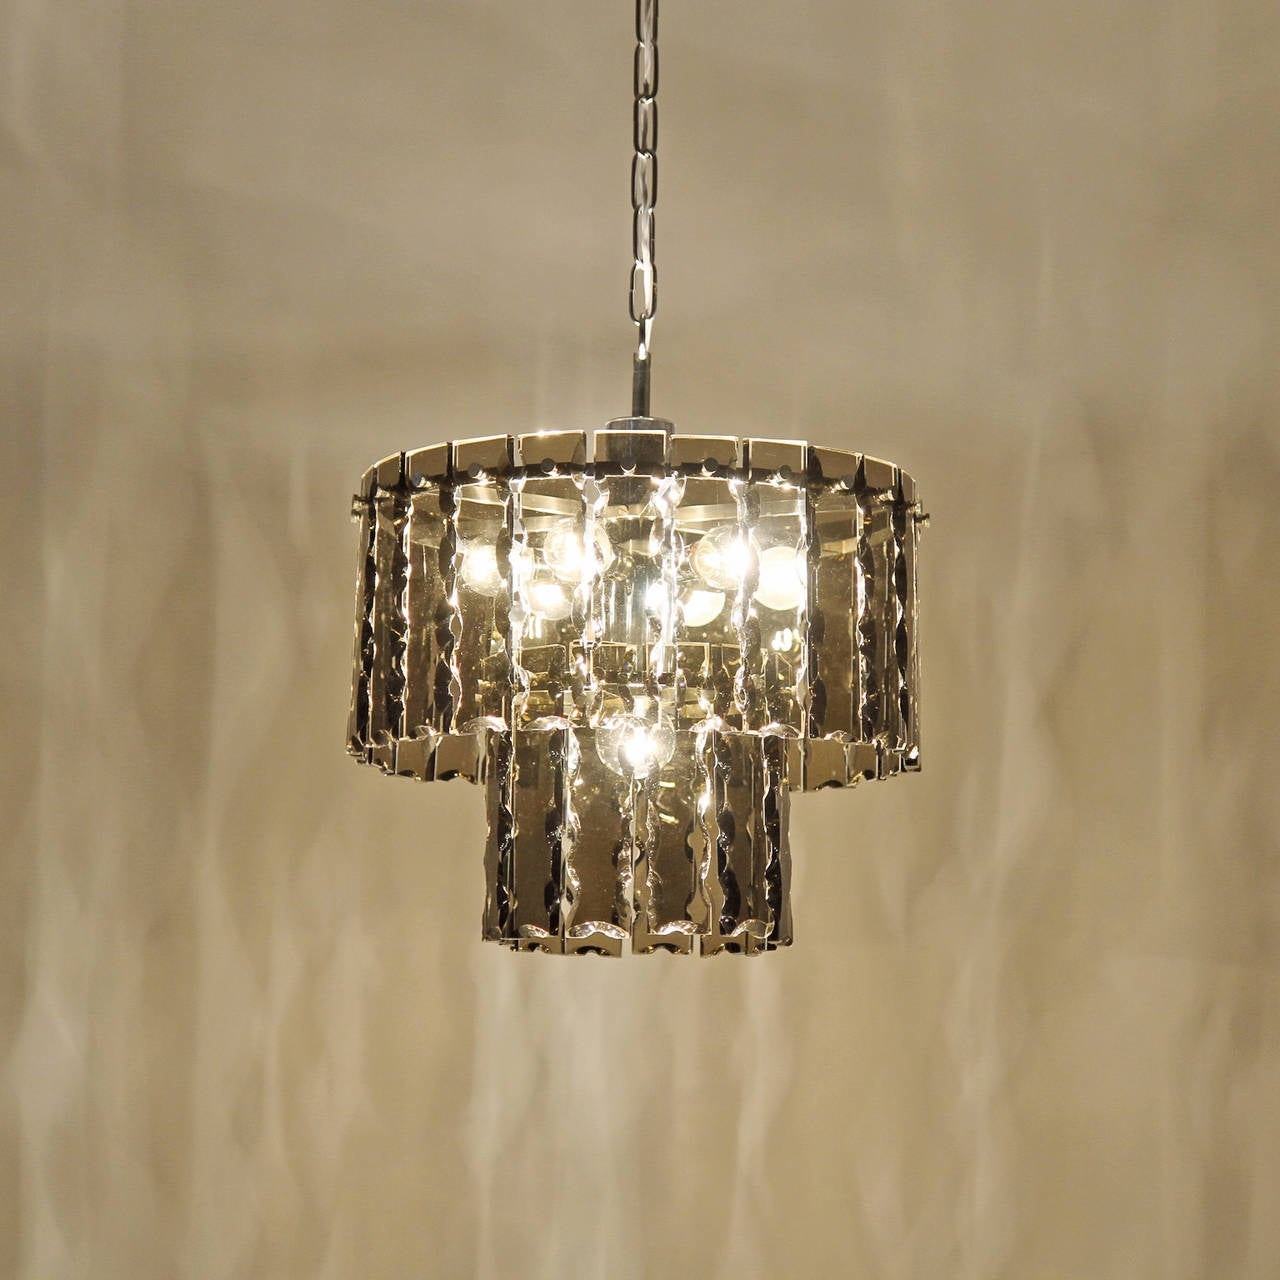 Fontana Arte Style Two-Tier Smoke Glass Chandelier 10